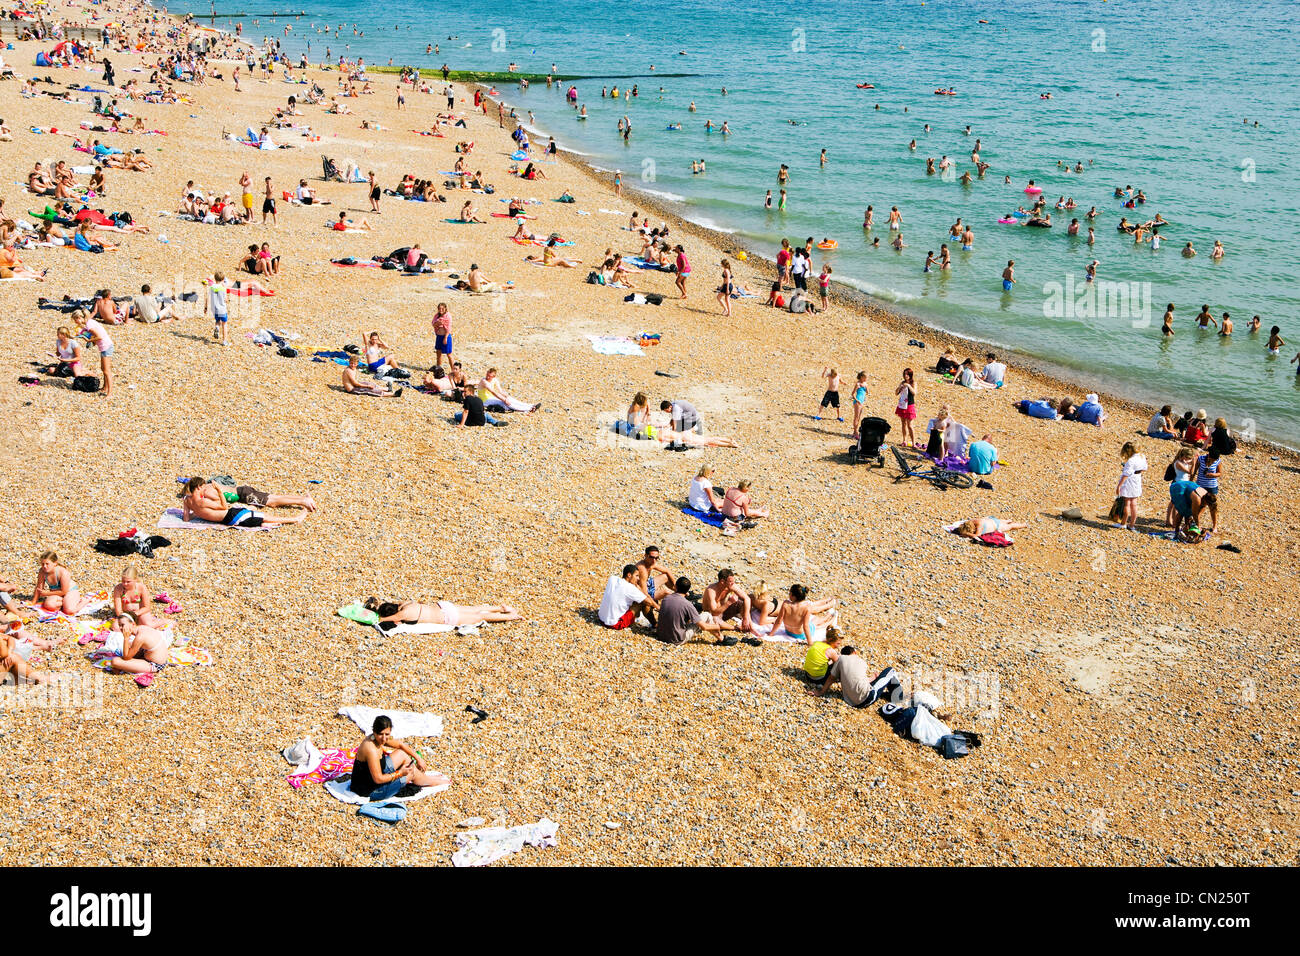 People on crowded beach, Brighton, England - Stock Image